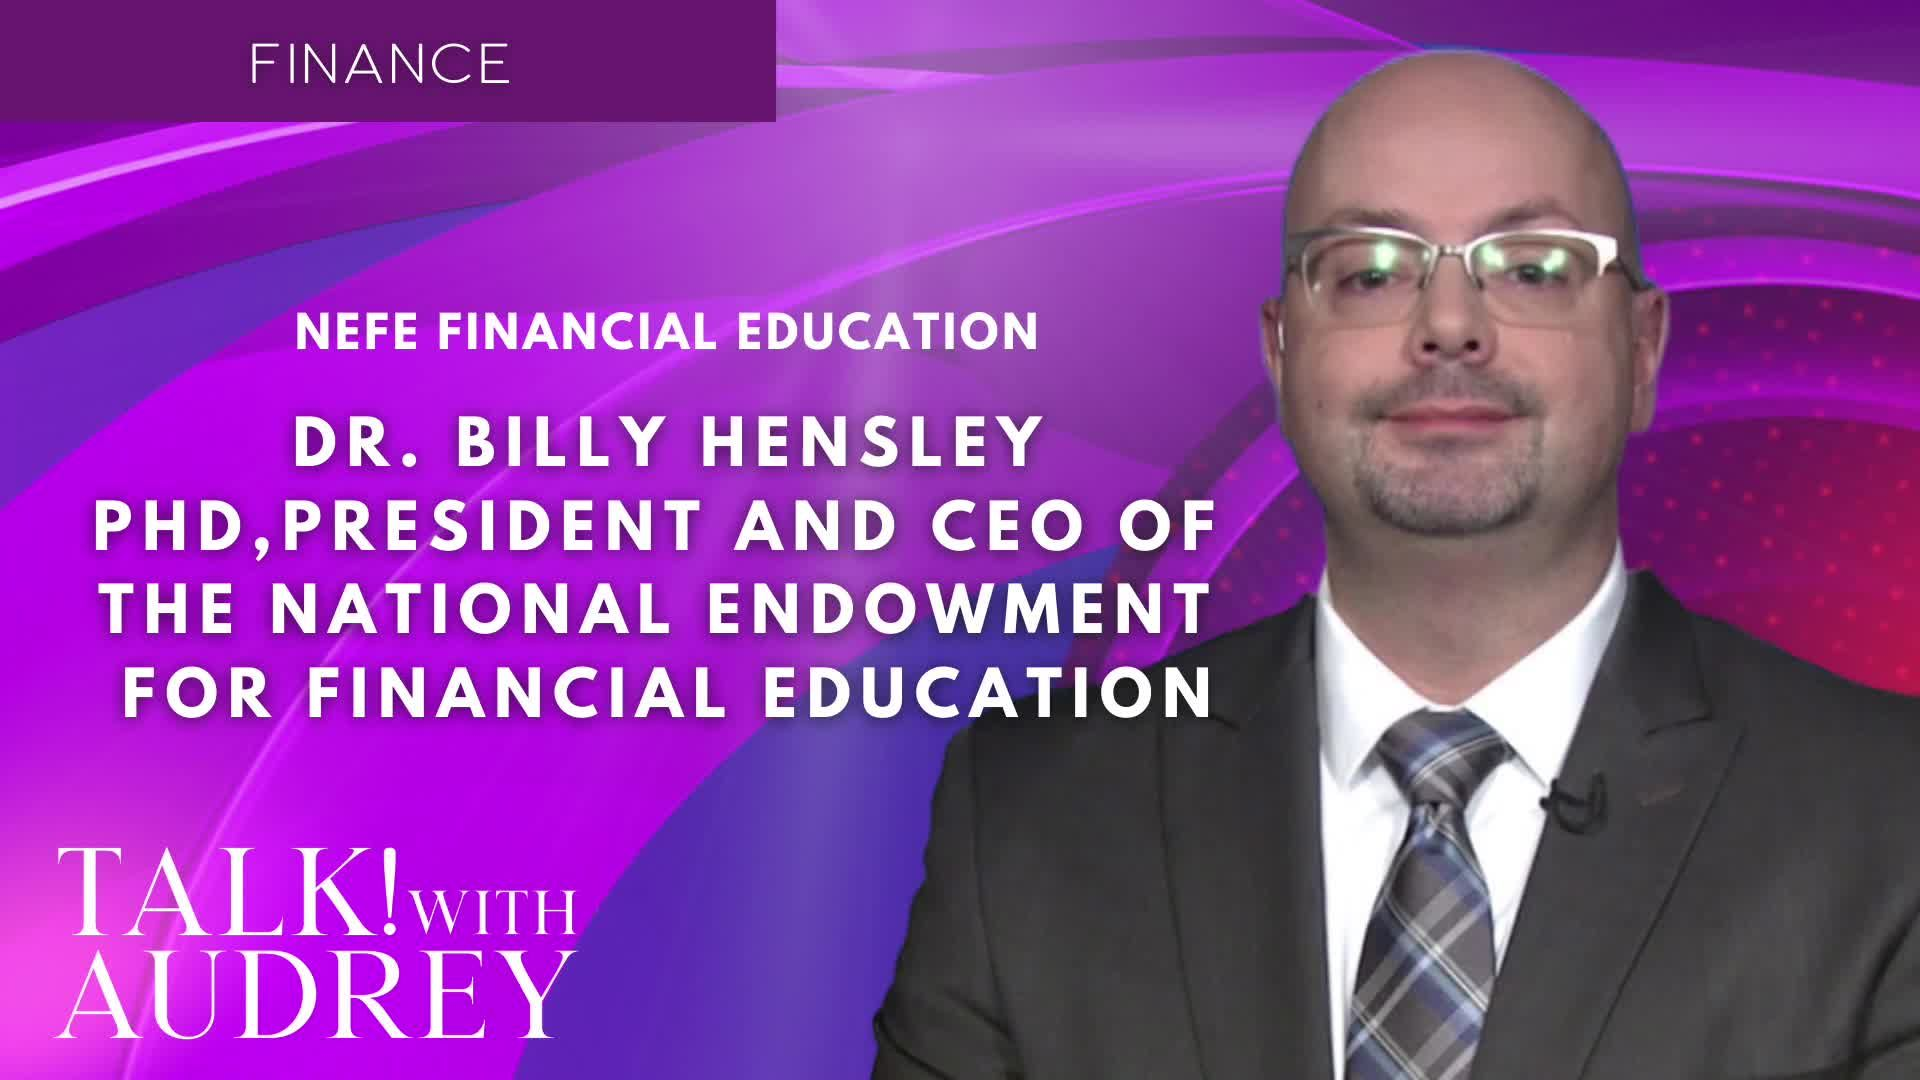 TALK! with AUDREY - Billy Hensley, PhD, President & CEO of the National Endowment for Financial Education